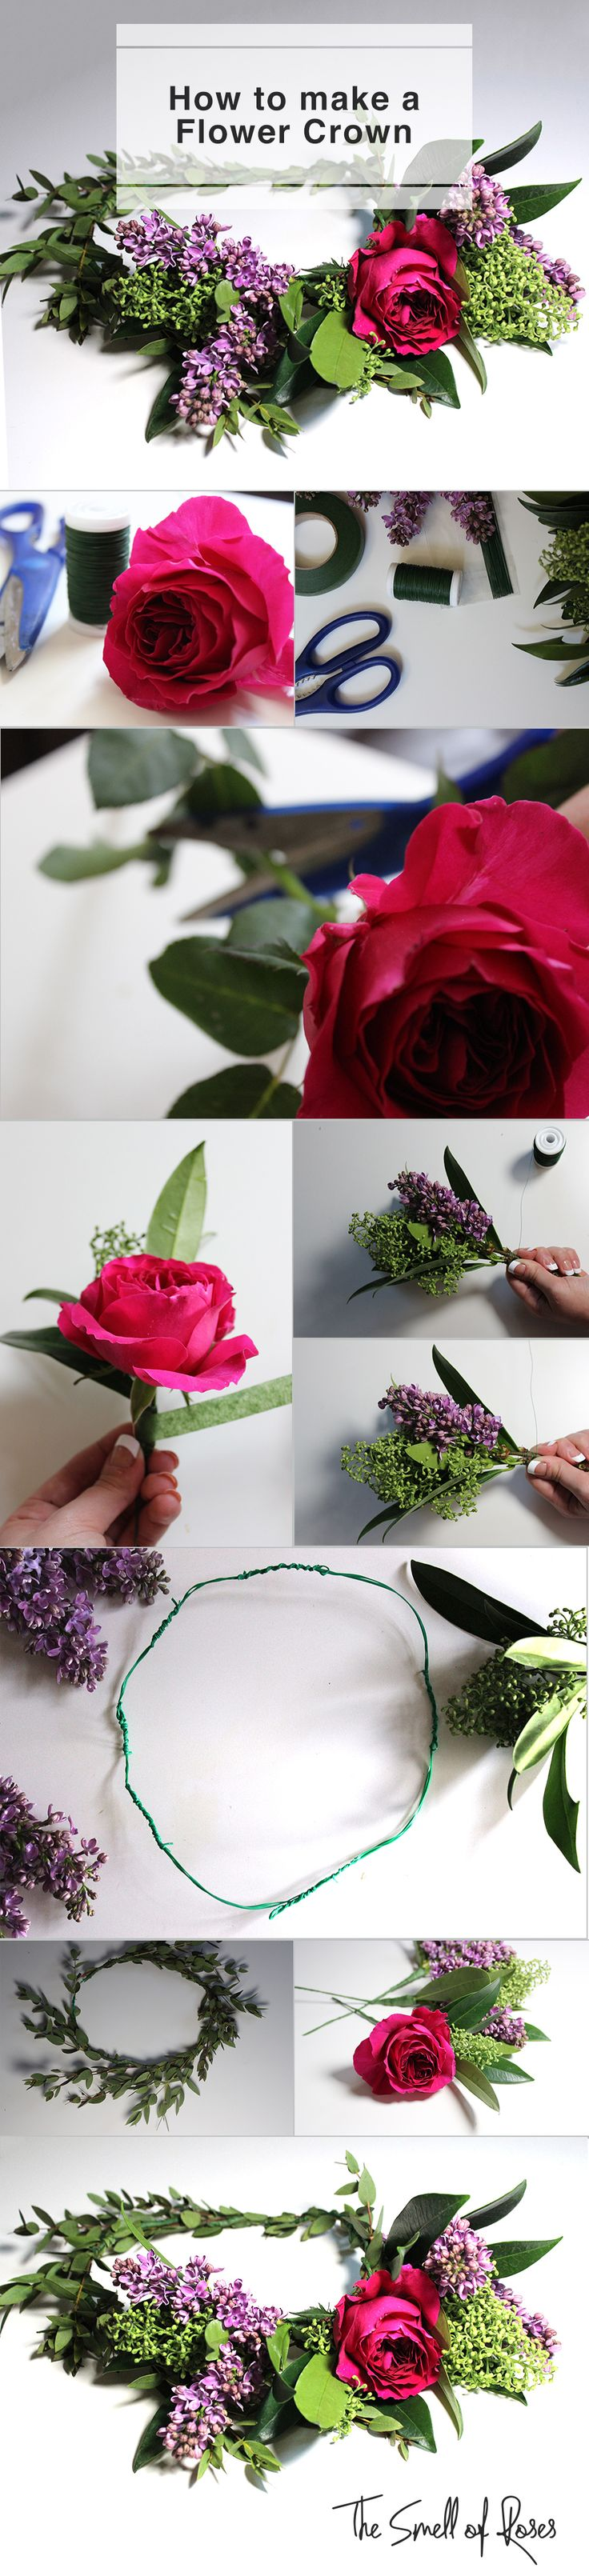 Flower crown DIY - tips & tricks - The Smell of Roses The Smell of Roses